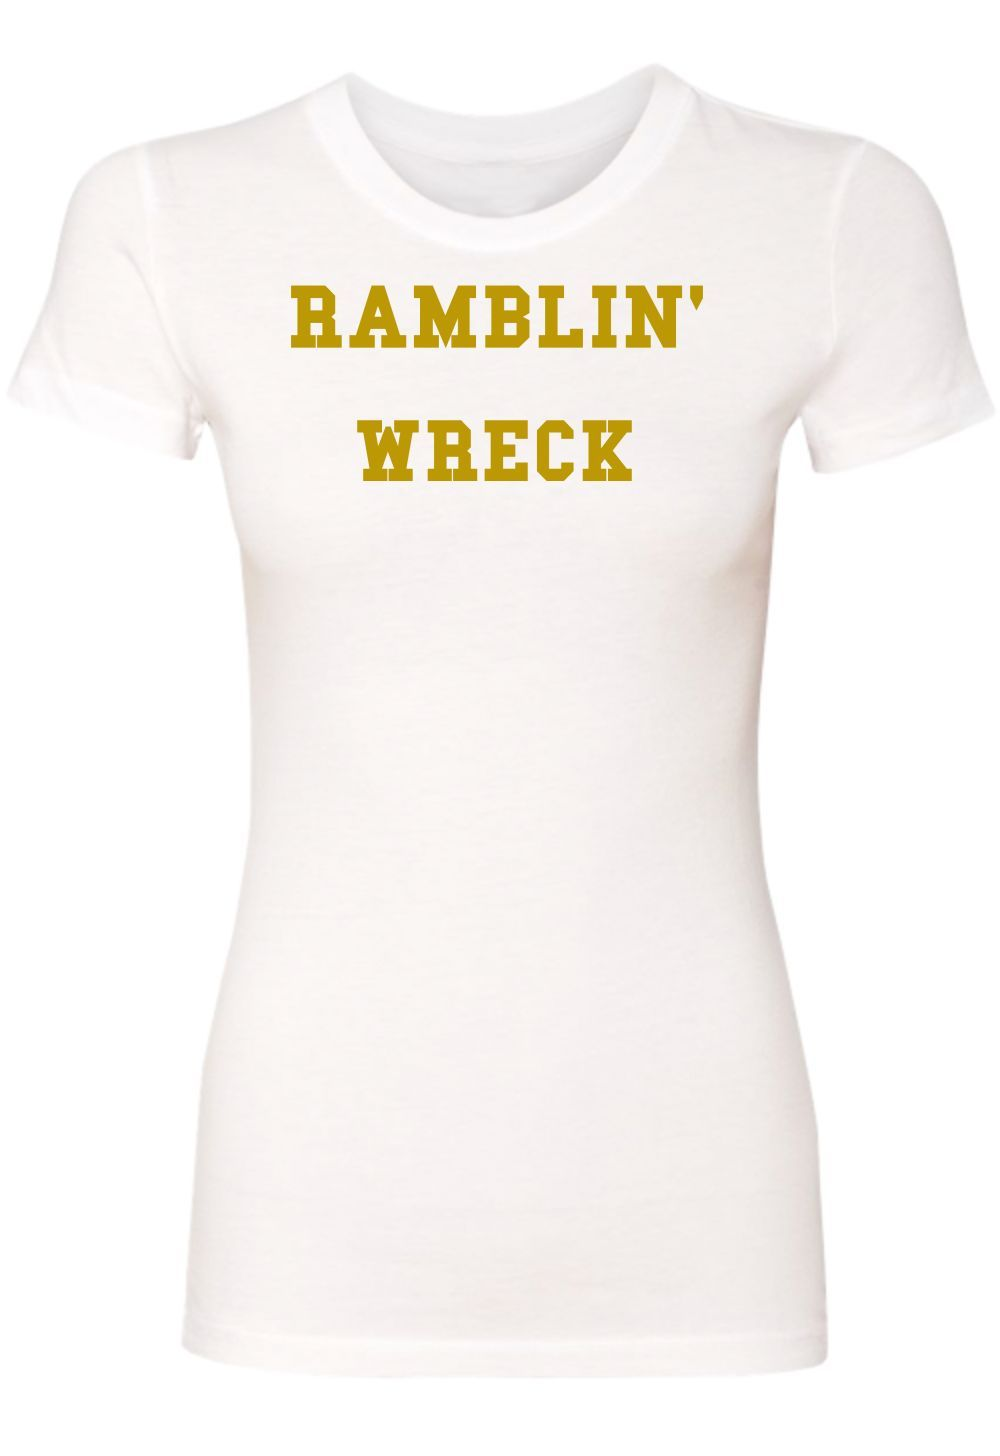 Georgia Tech-Ramblin' Wreck Ladies Perfect Tee [Runs Small]